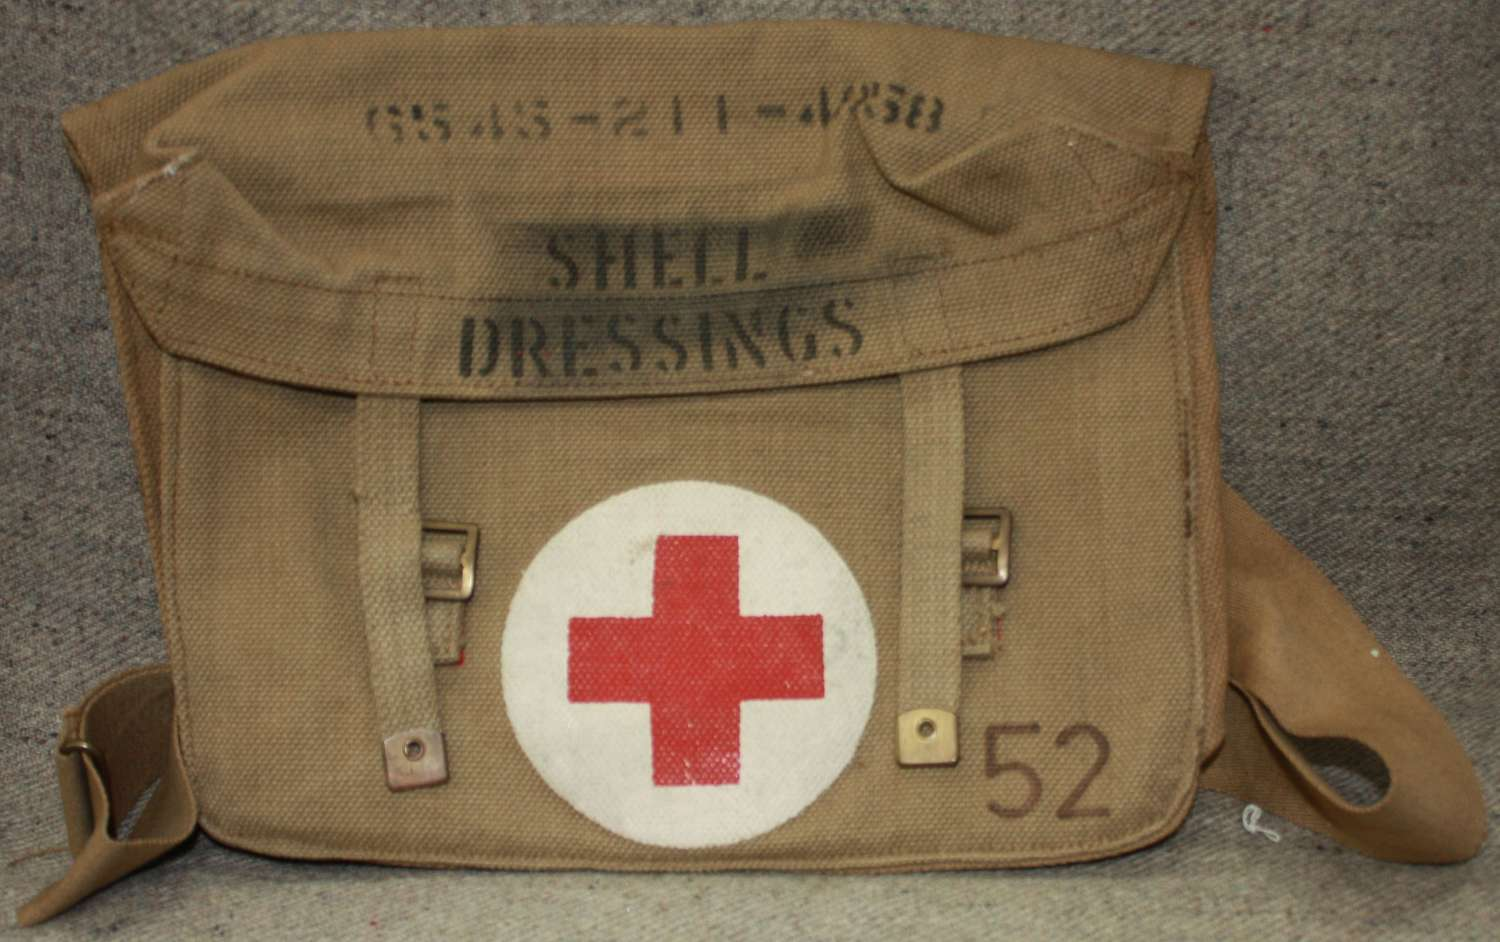 A WWII FIELD DRESSING BAG 1942 DATED